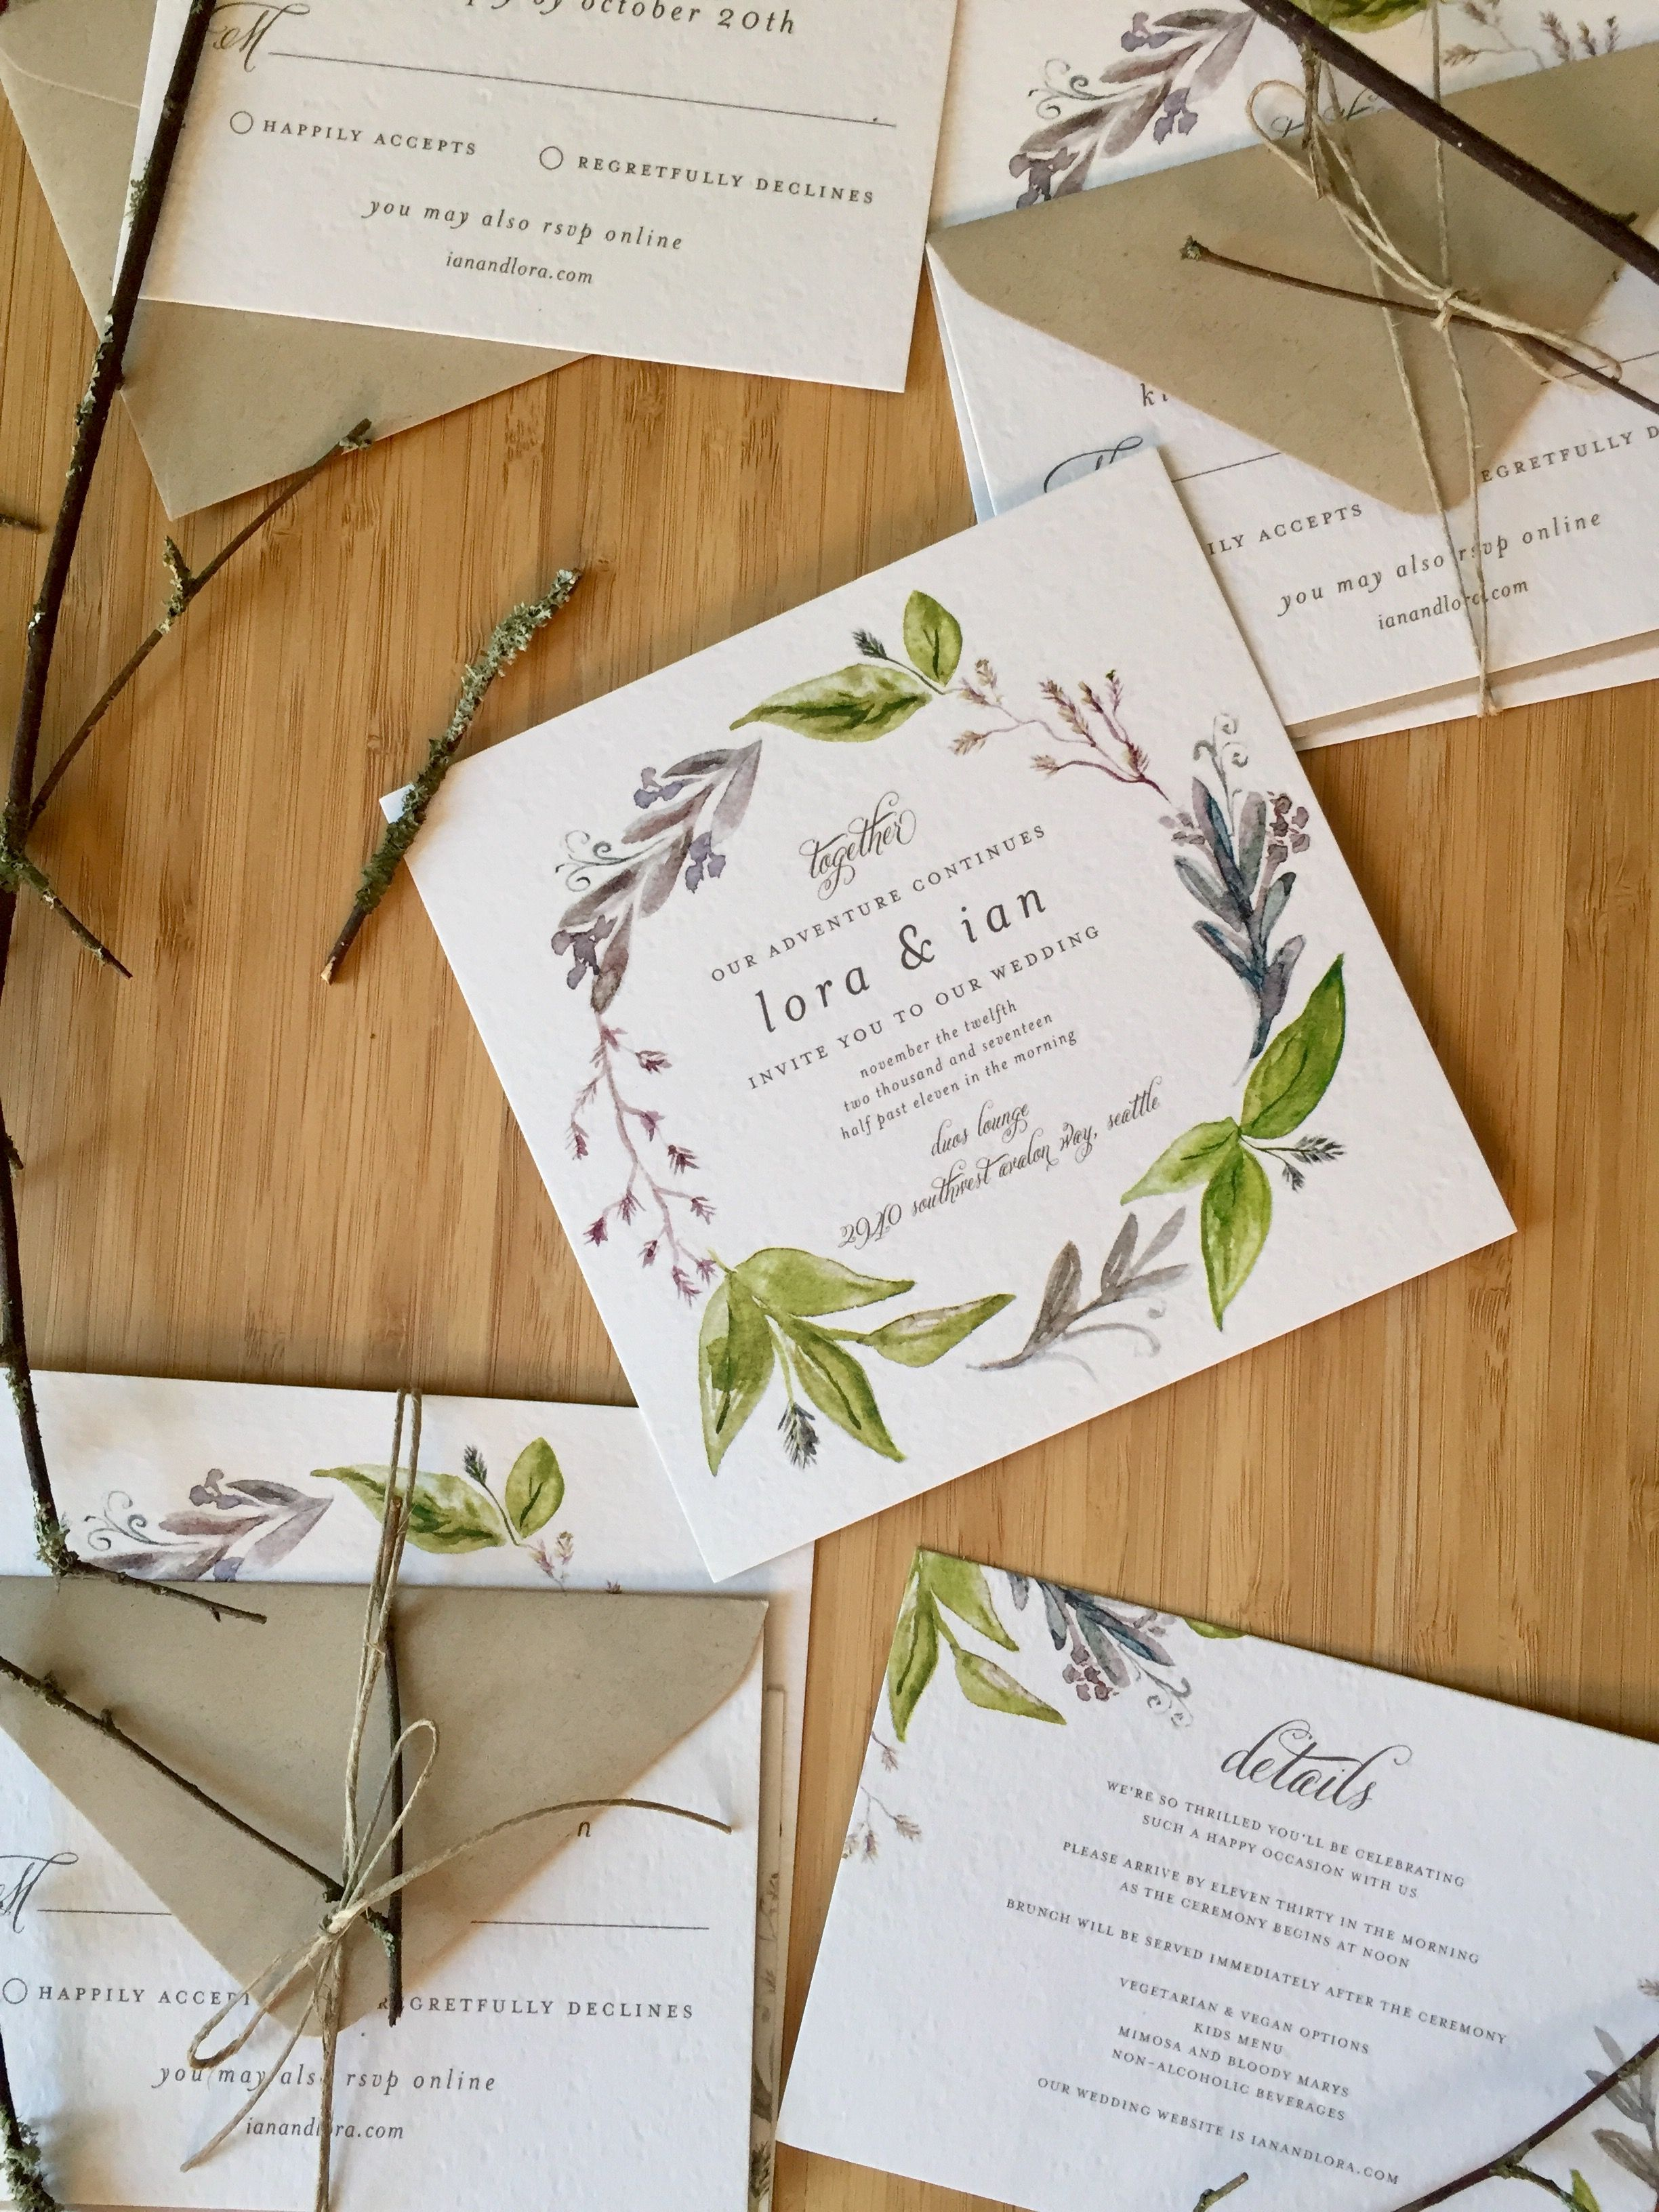 wedding invitation date wording etiquette%0A Botanical wedding invitations tied with twine and sticks